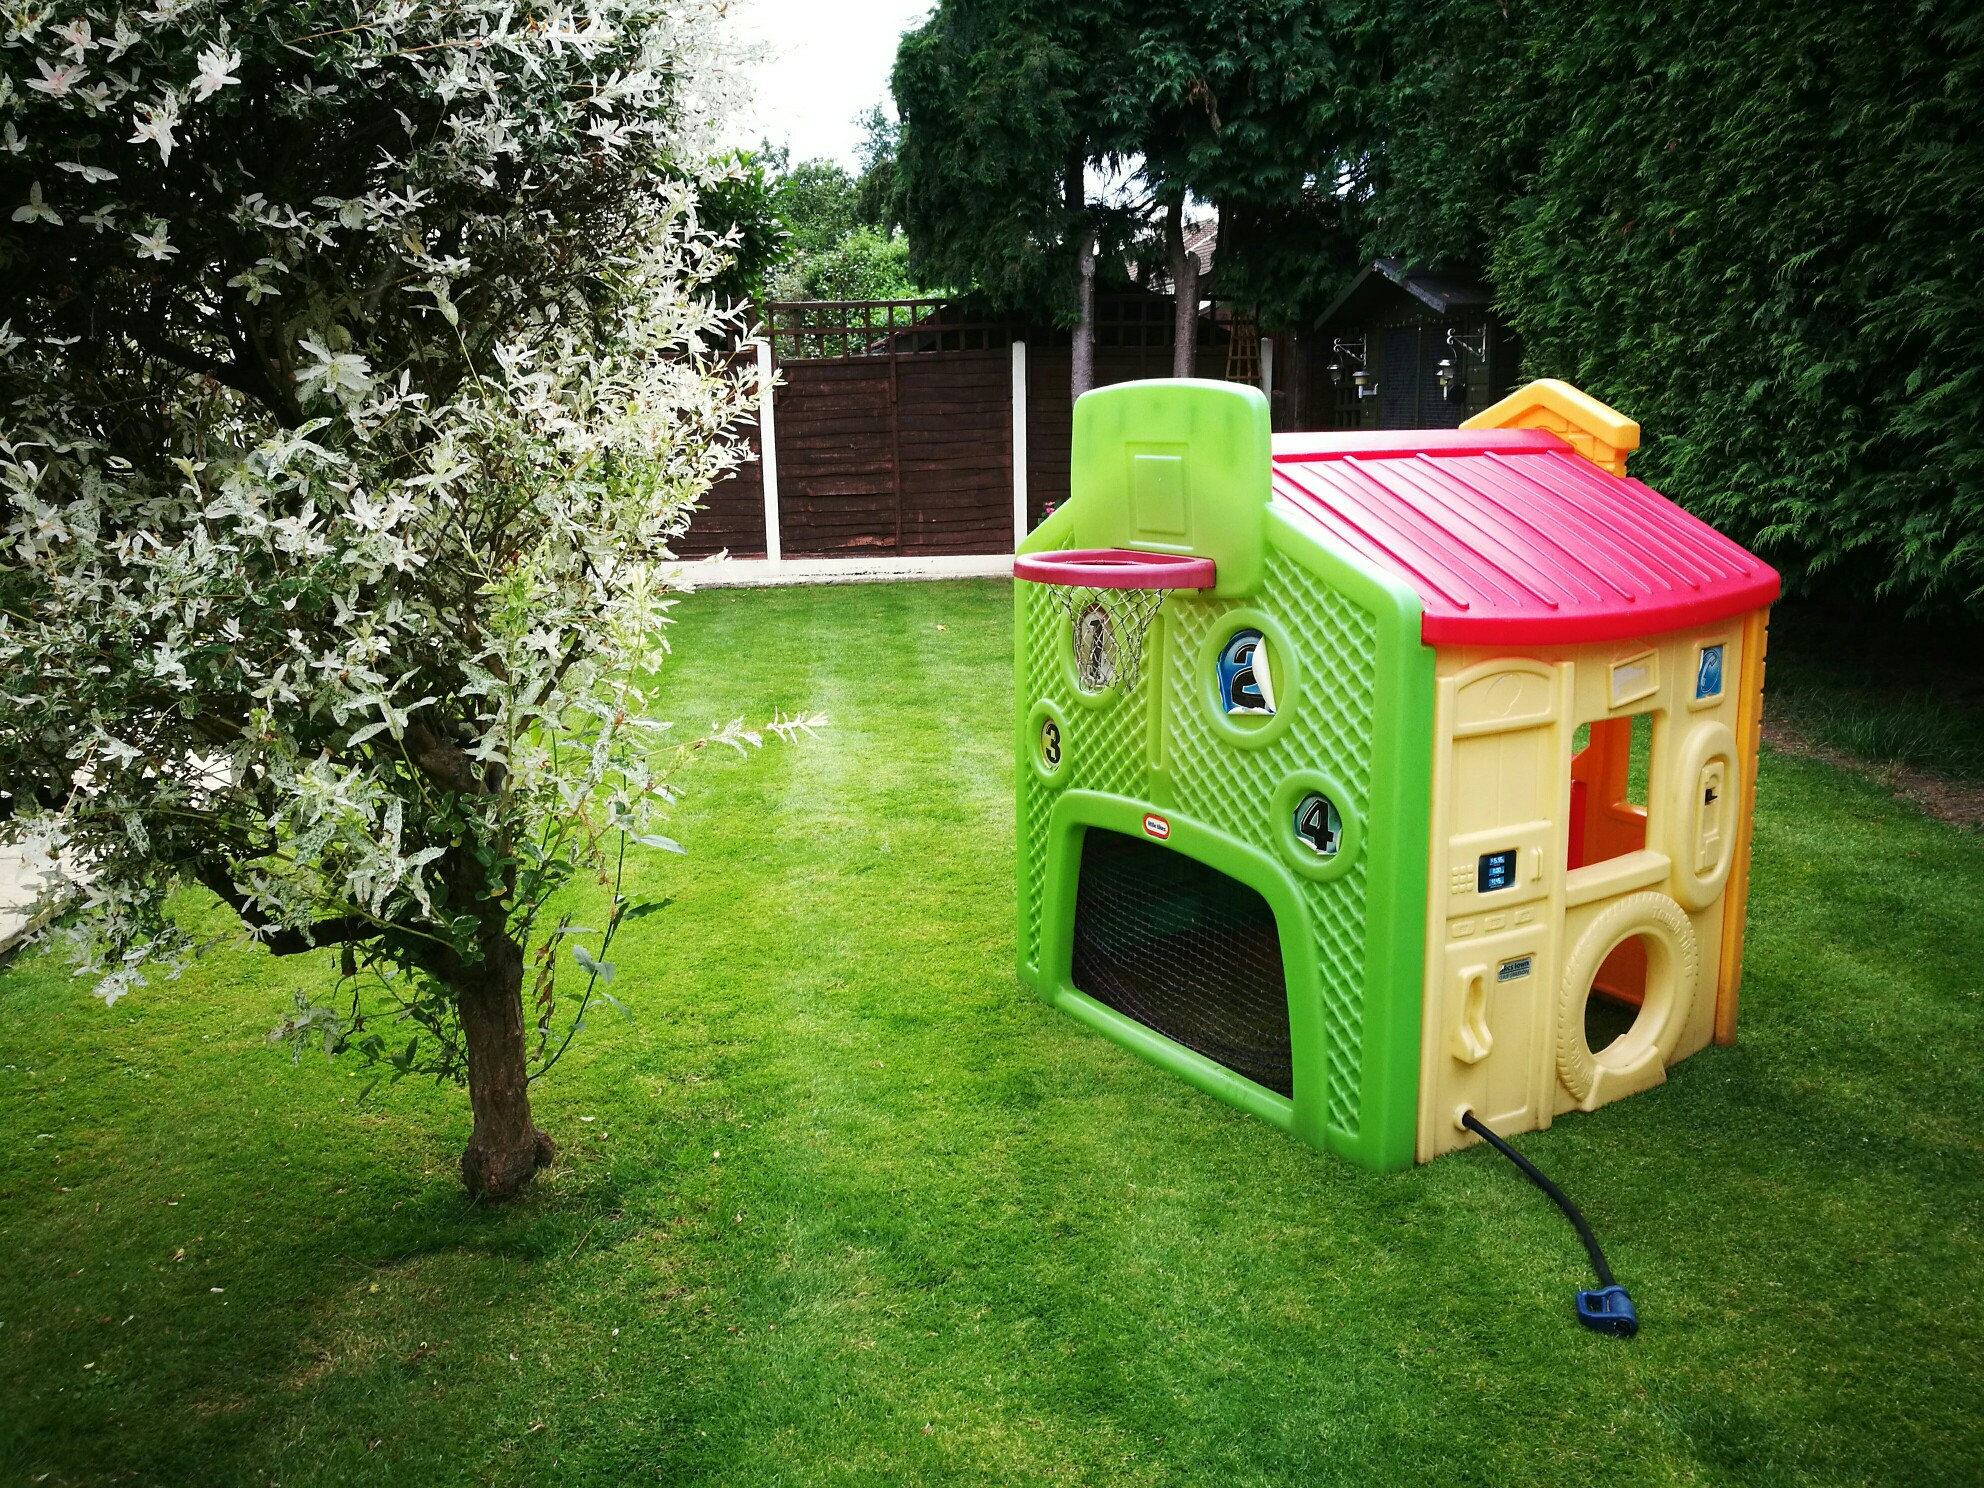 Outdoor Playhouse For Sale In Uk View 98 Bargains: outdoor playhouse for sale used